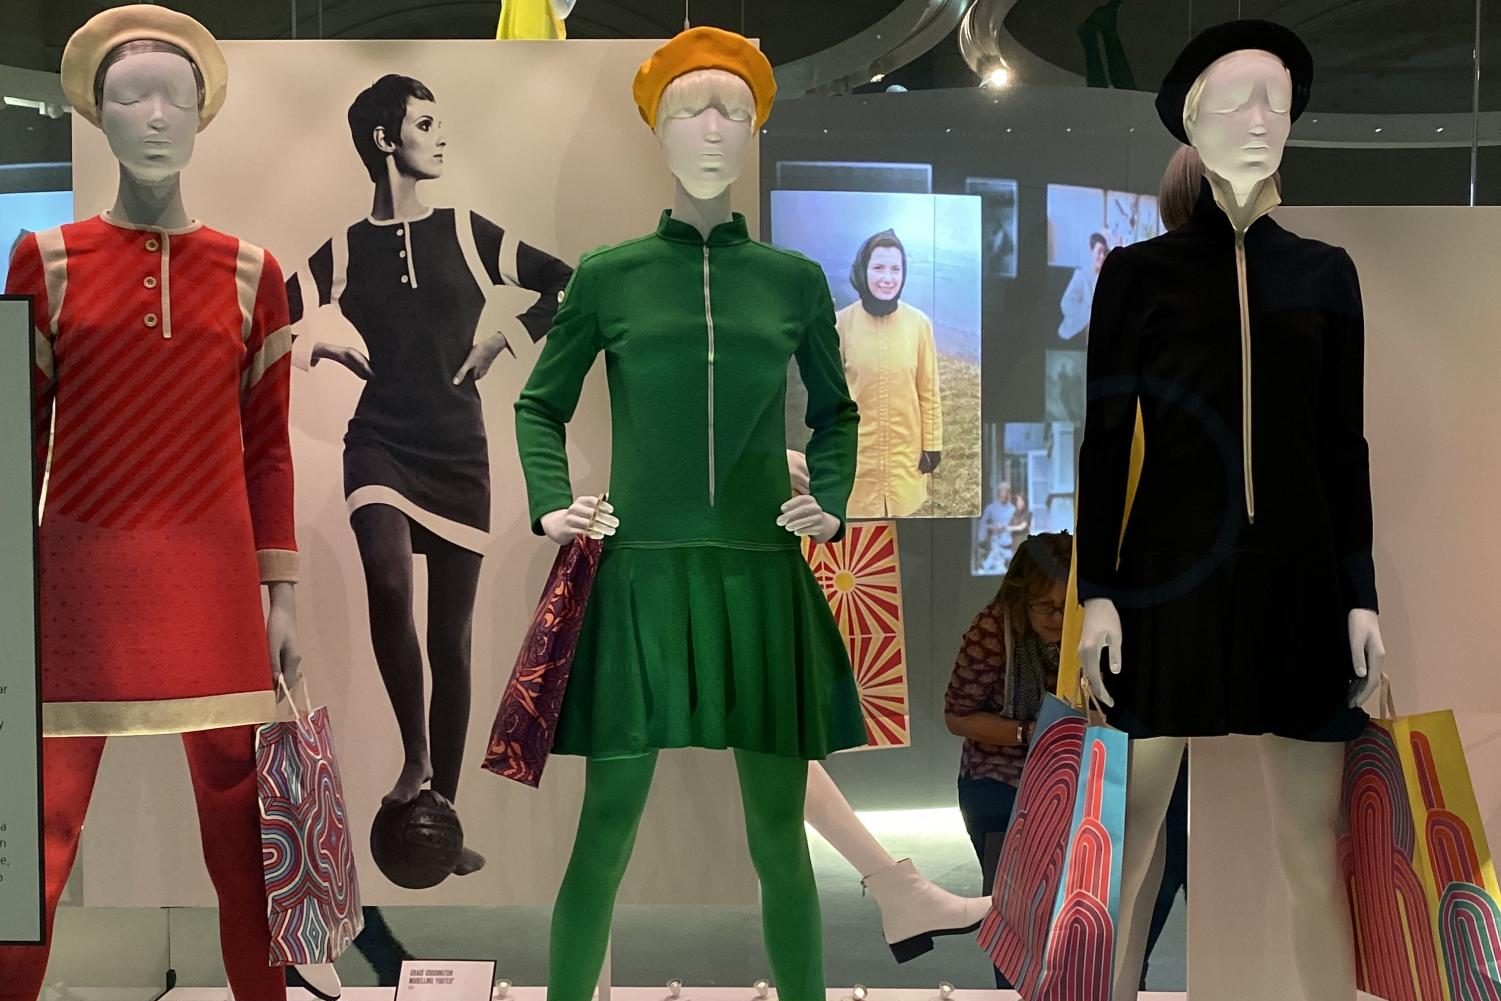 Mannequins modelling variations of the